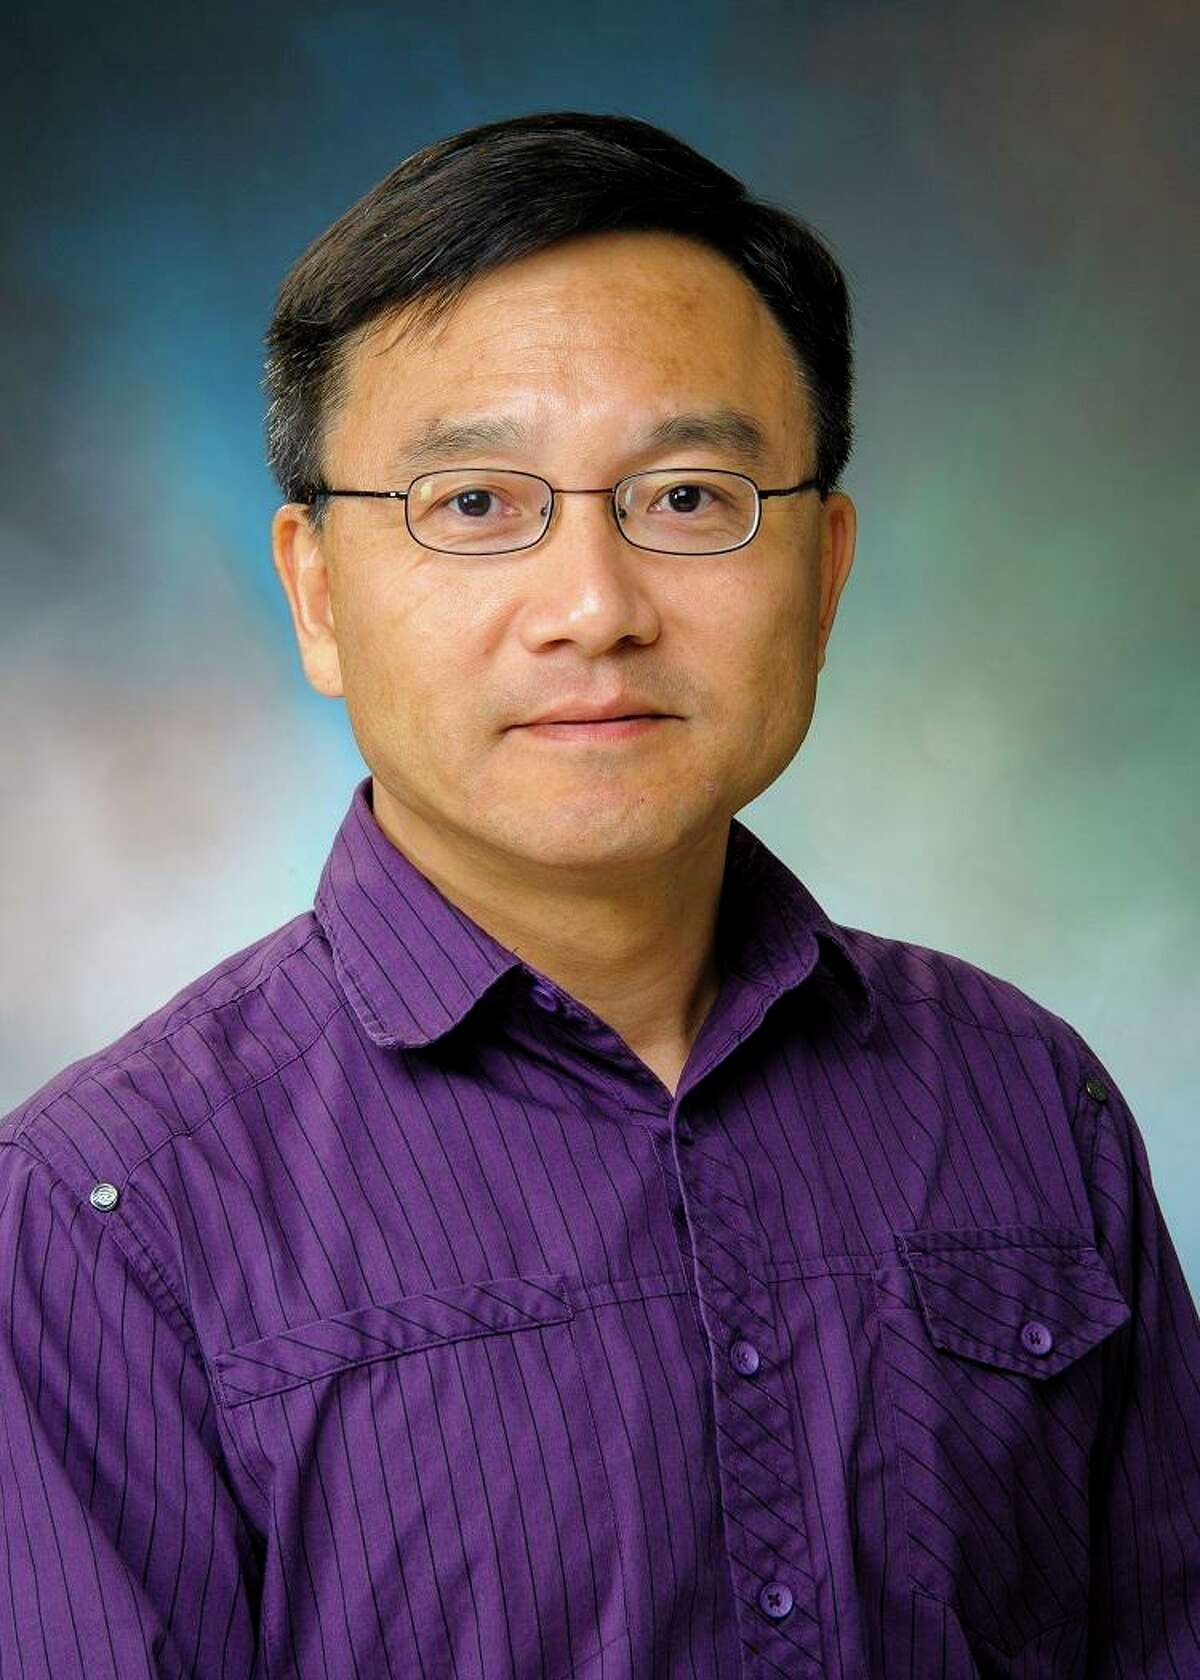 Dr. Pei-Yong Shi, a virologist and professor of human genetics at the University of Texas Medical Branch at Galveston, conducted a study determining that Pfizer's COVID-19 vaccine is effective against mutated, highly-transmissible strains of the virus.